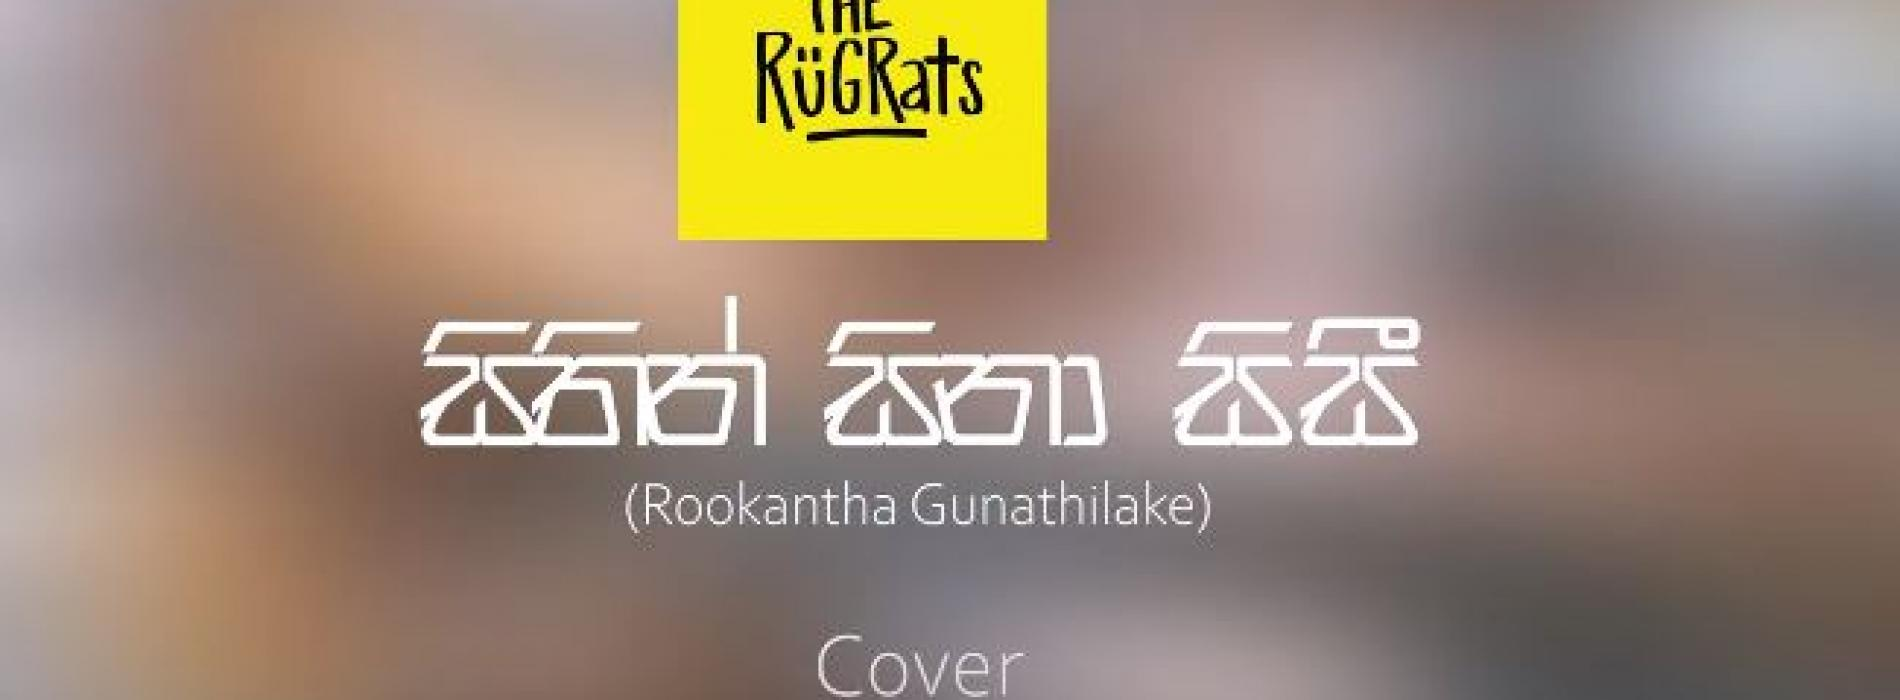 New Music : Sithin Sina sisi – Rookantha Gunathilaka / Cover By The Rugrats Featuring Amarsha Tissera